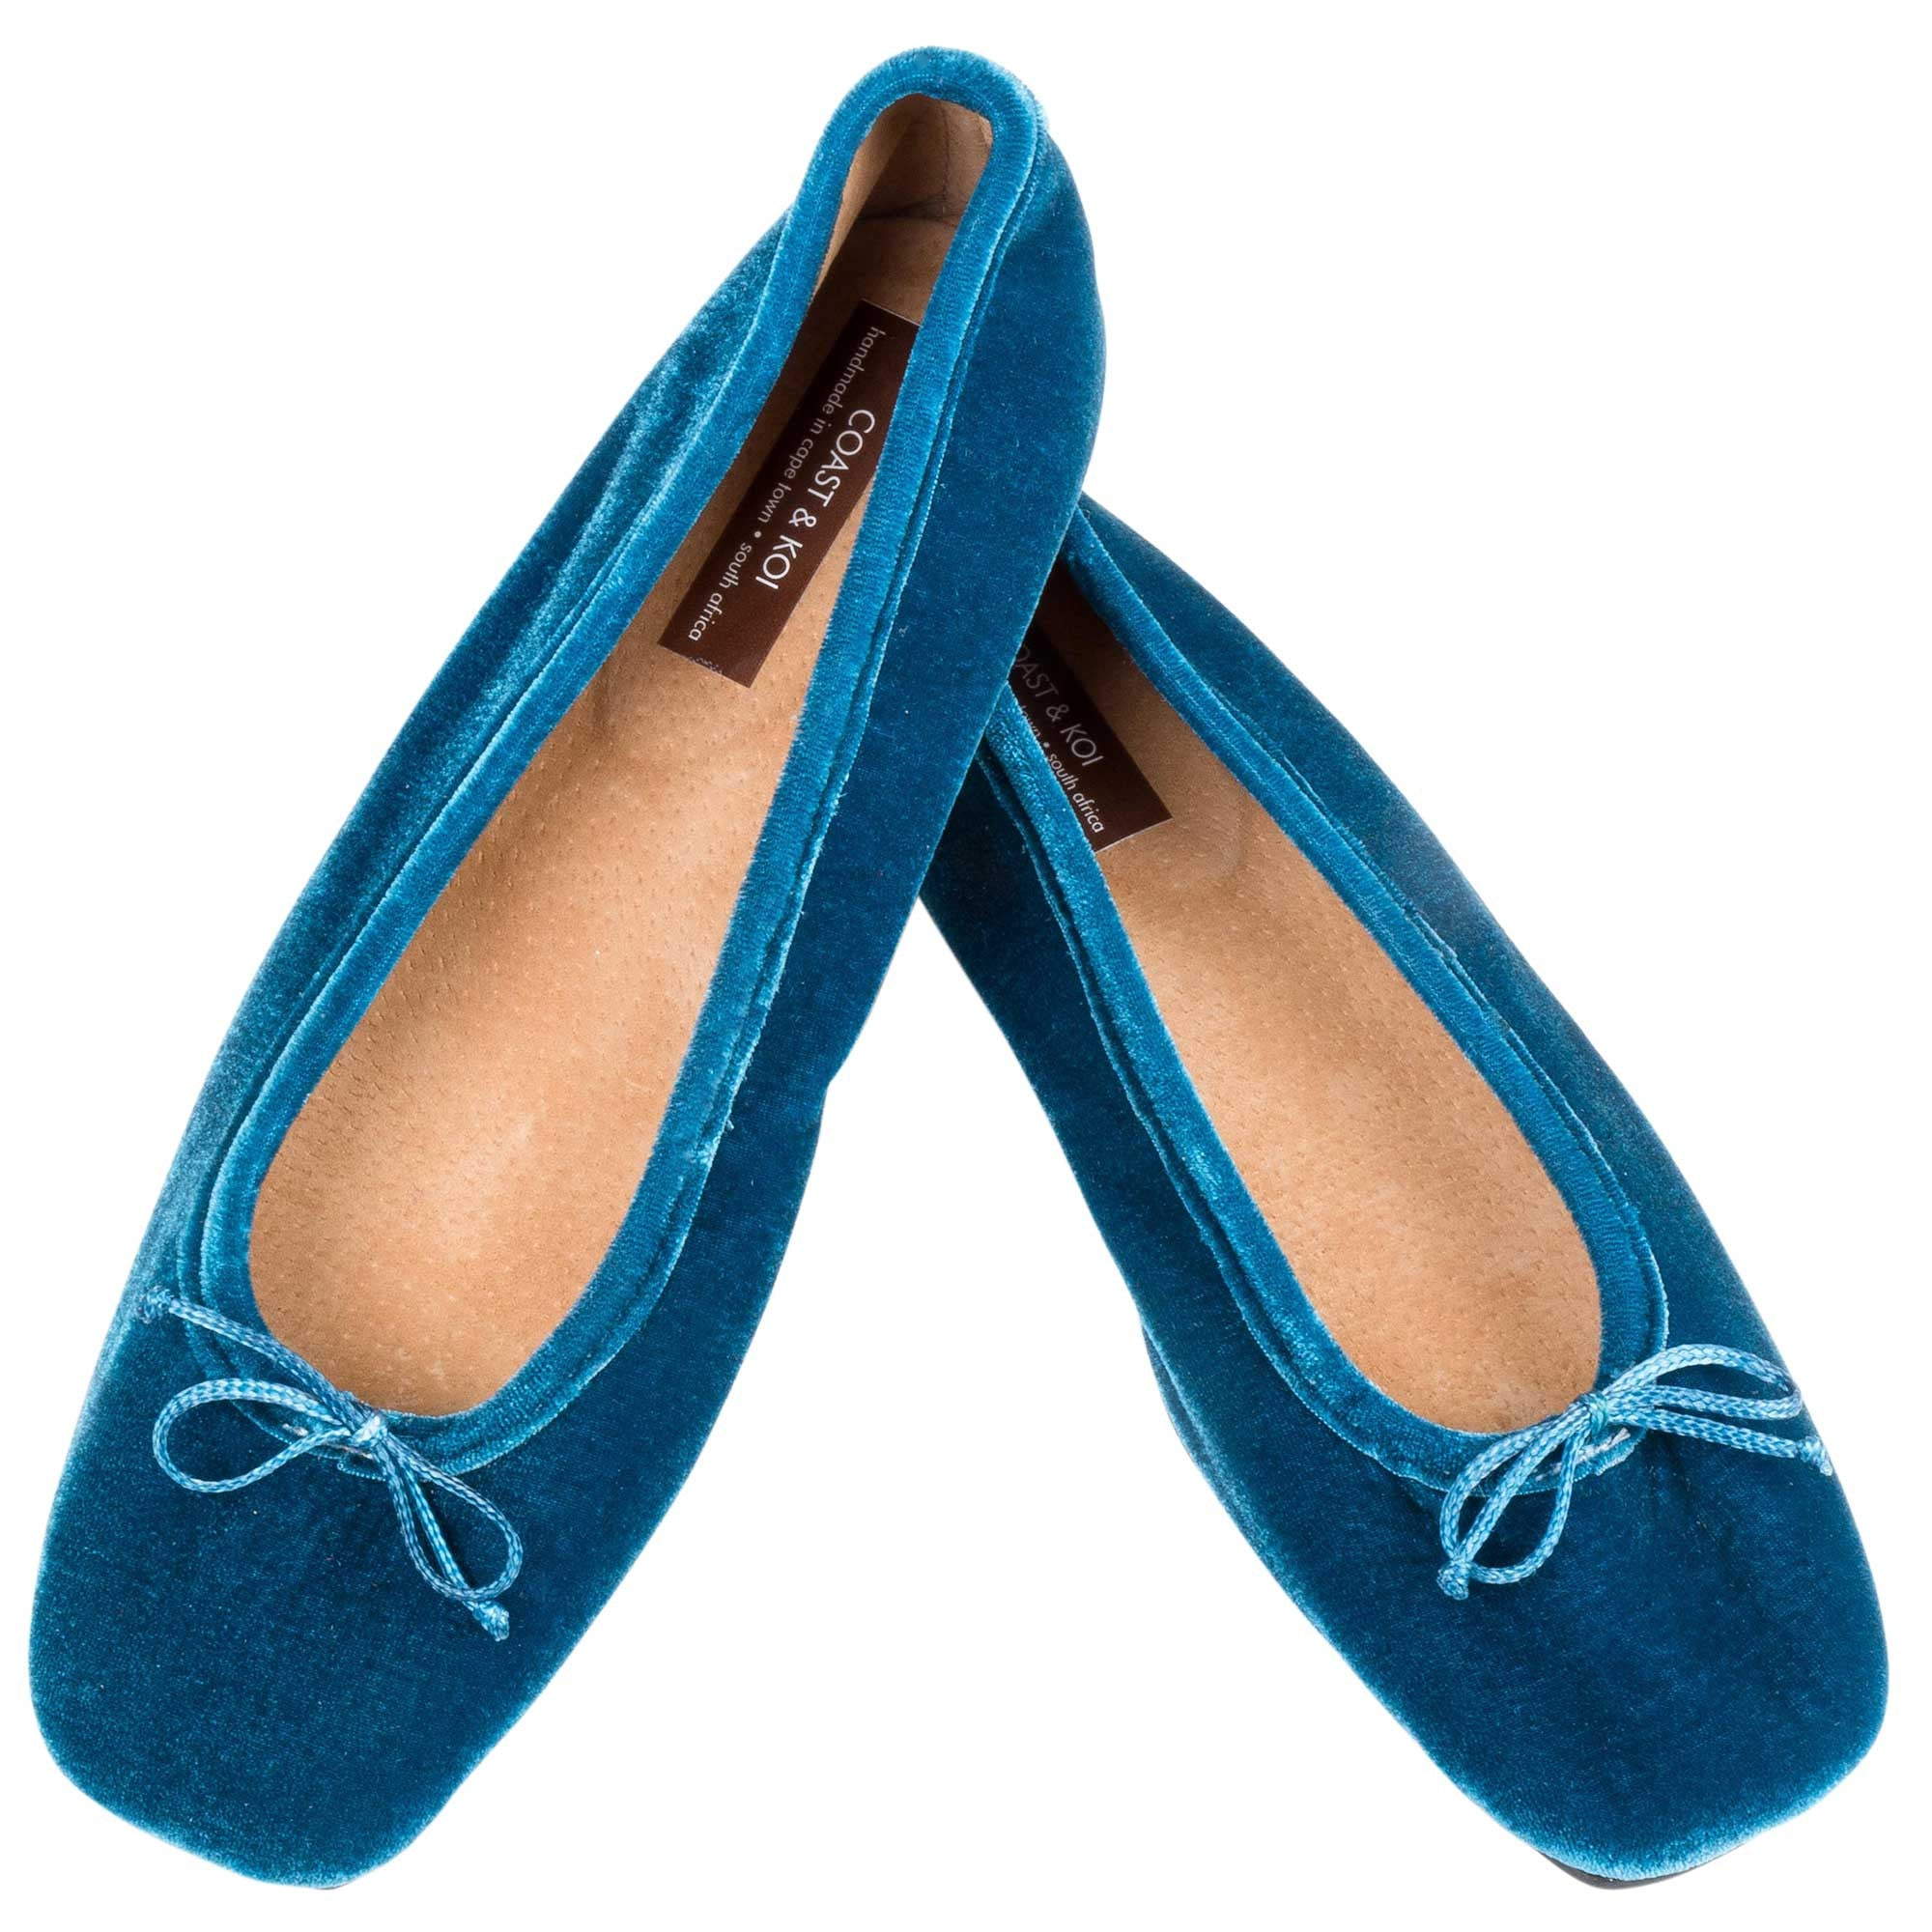 Teal Square Toe pump